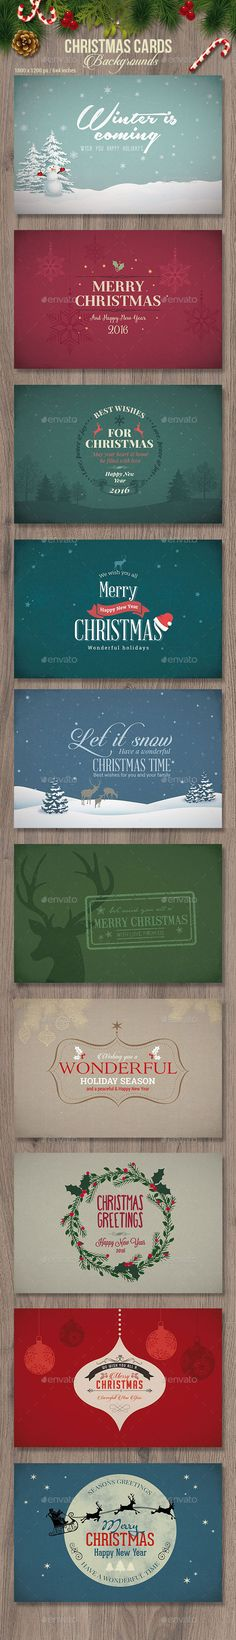 Christmas Cards / Backgrounds Template PSD #design Download: http://graphicriver.net/item/christmas-cards-backgrounds/13788487?ref=ksioks